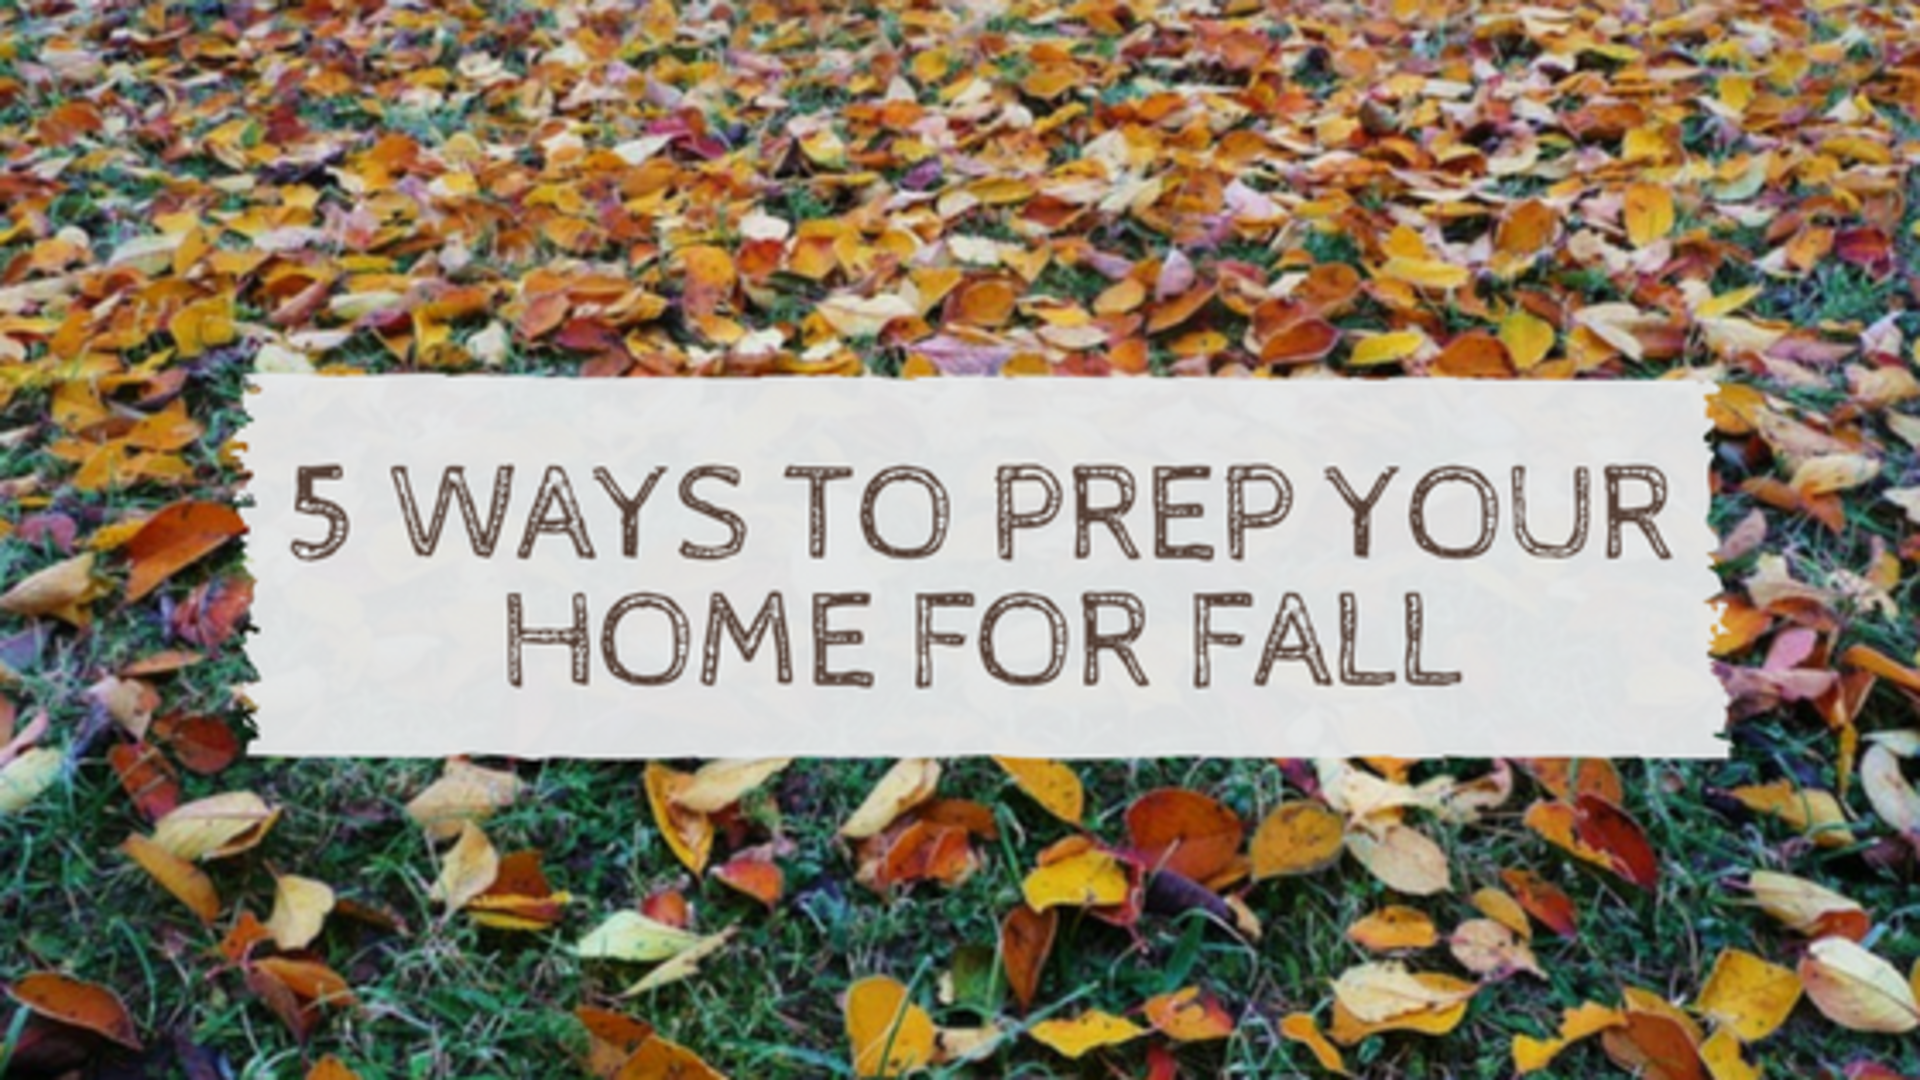 5 Ways to Prep Your Home for Autumn